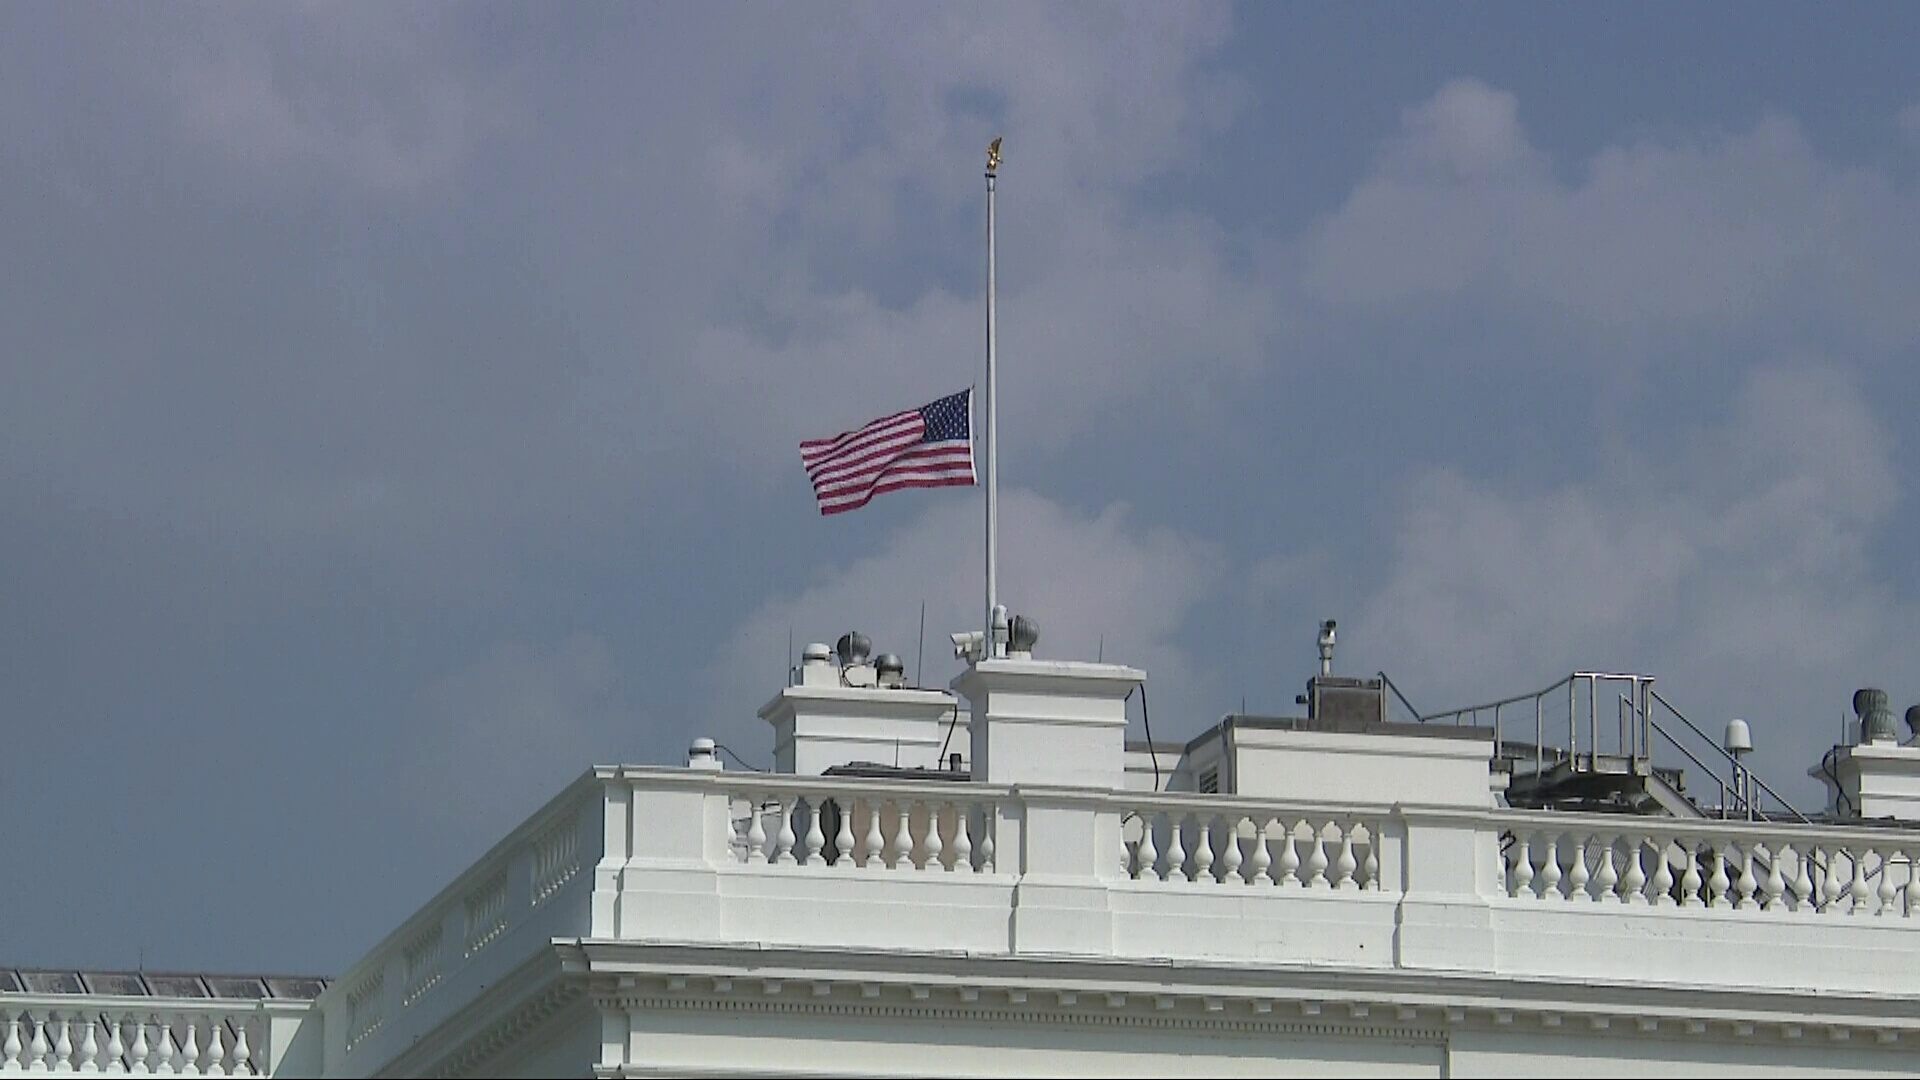 Admirable Amid Criticism White House Flag Lowered Again For John Download Free Architecture Designs Scobabritishbridgeorg